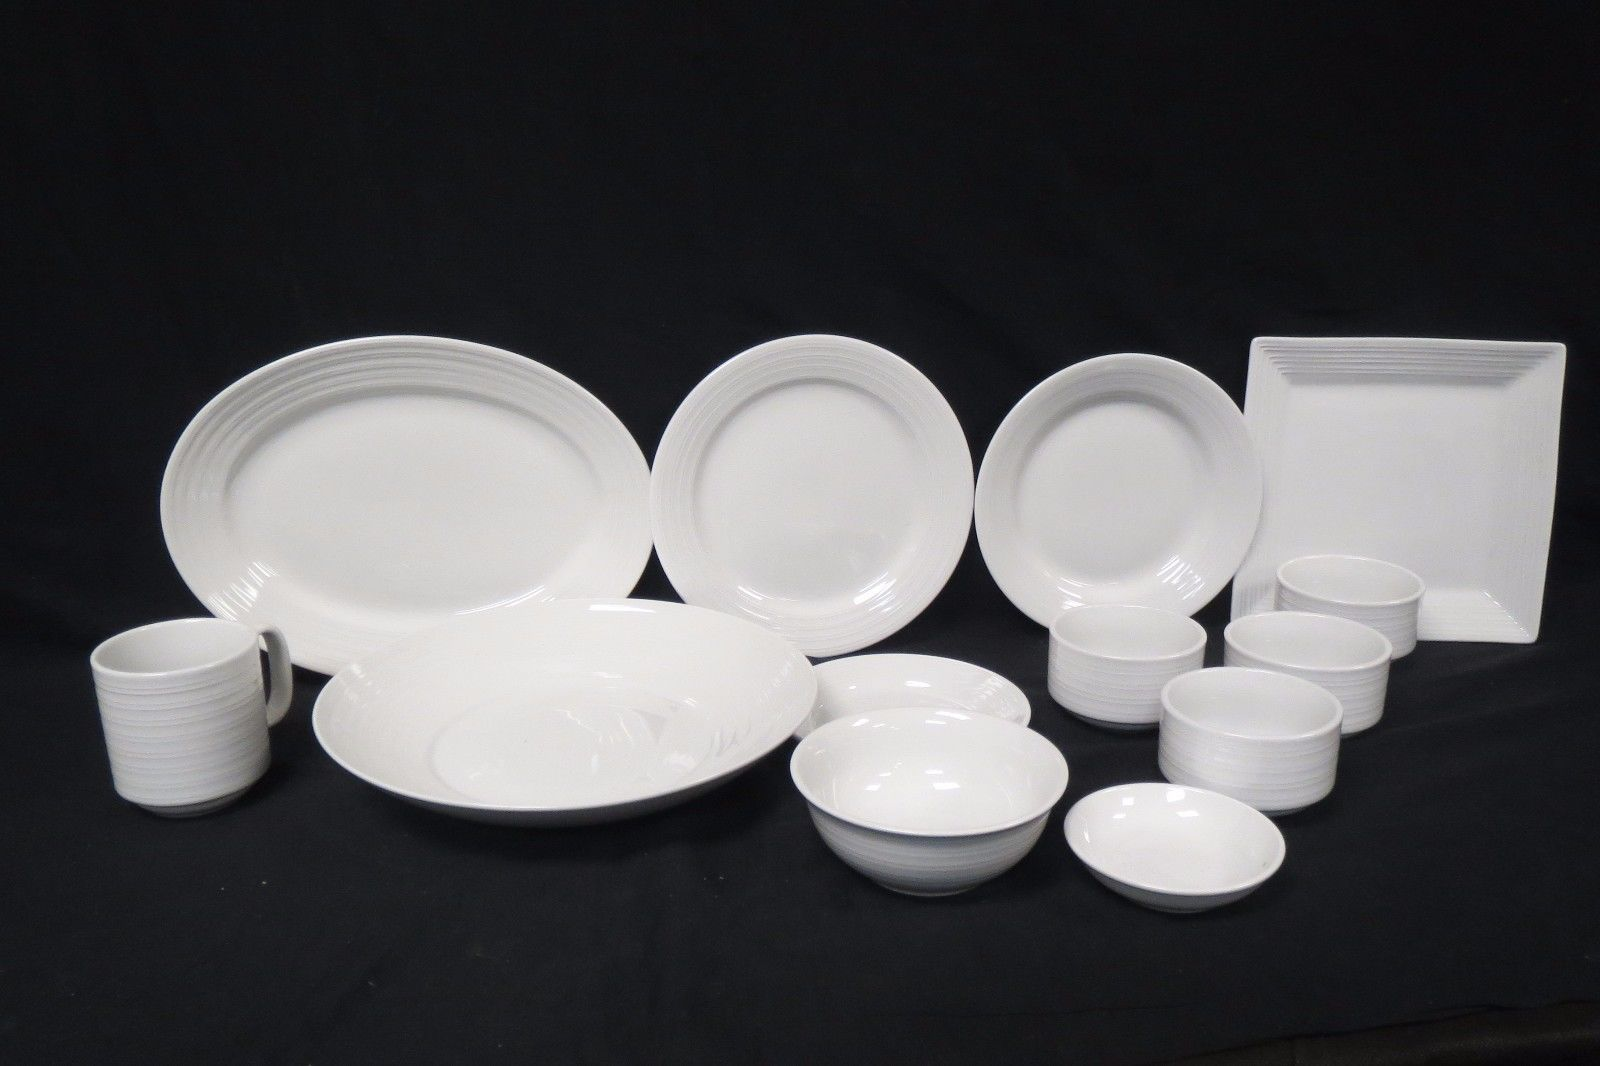 S l1600 & Tuxton White Dishes Lot Of 12 Pieces and 50 similar items